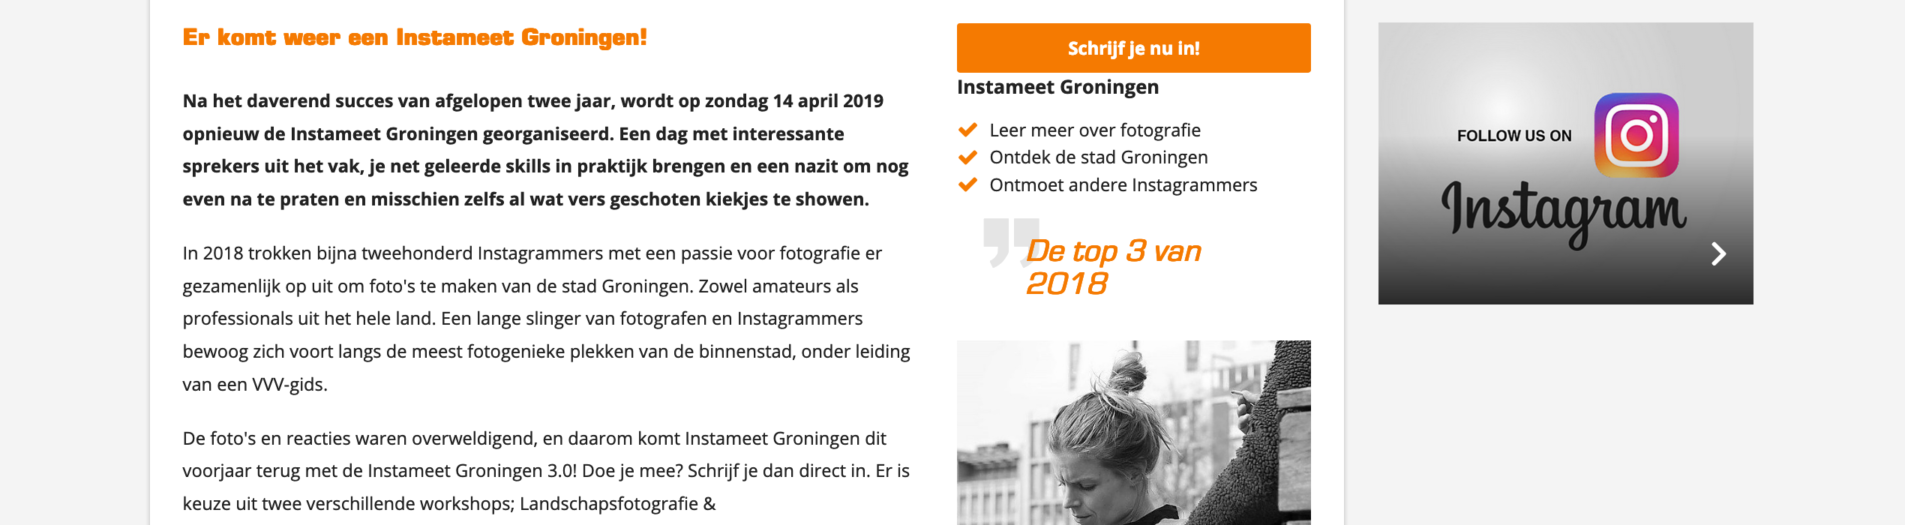 #InstameetGroningen coming 3.0 date is released via/ @Visit.Groningen VVV/MarketingGroningen the event will be held on Sunday, April 14th 2019 SignUp is going really fast!